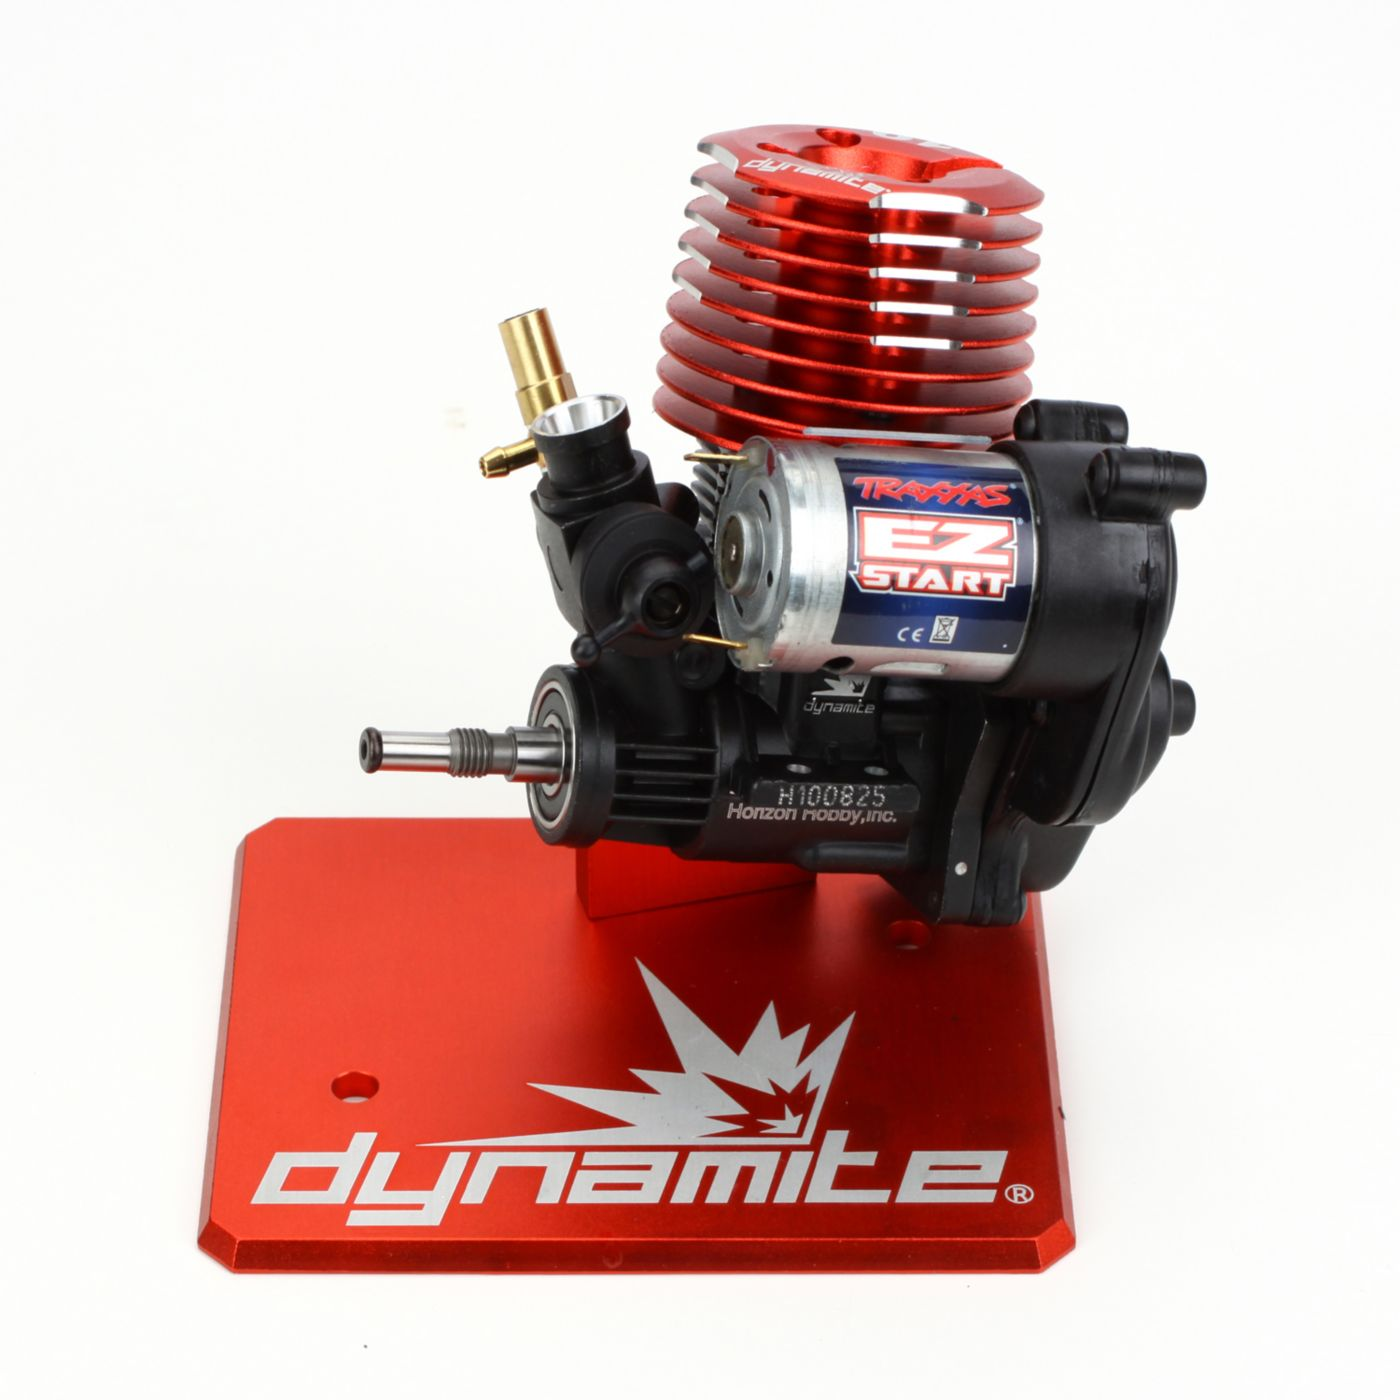 DYN0700_a7 mach 2 19t replacement engine for traxxas vehicles horizonhobby Traxxas Jato 3.3 Hop-Ups at beritabola.co